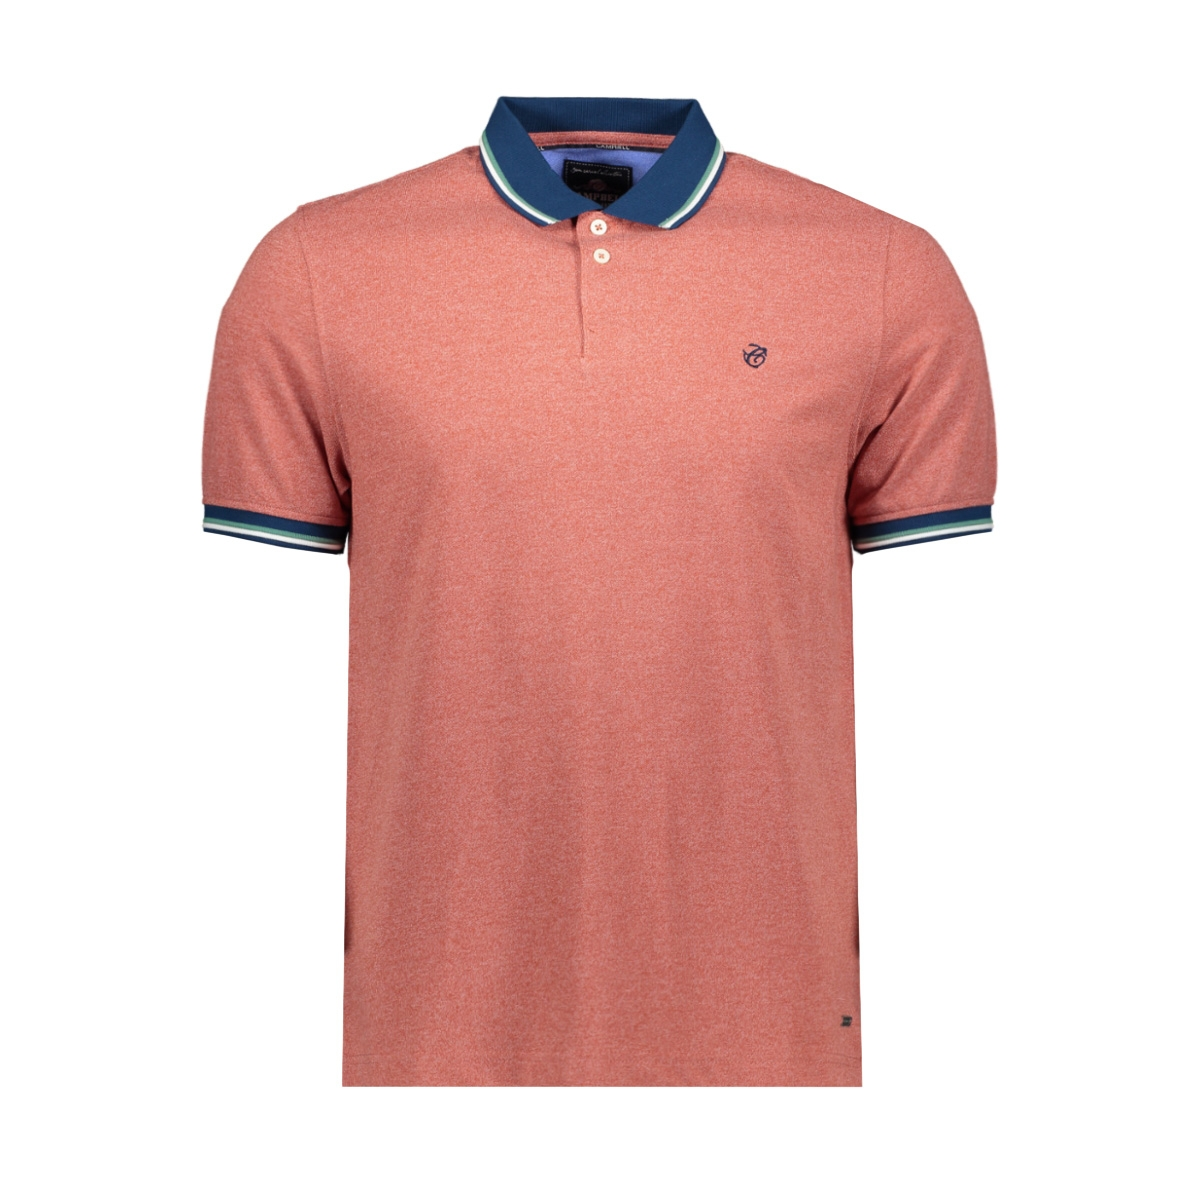 classic polo km 052943 campbell polo 003 donkerrood uni